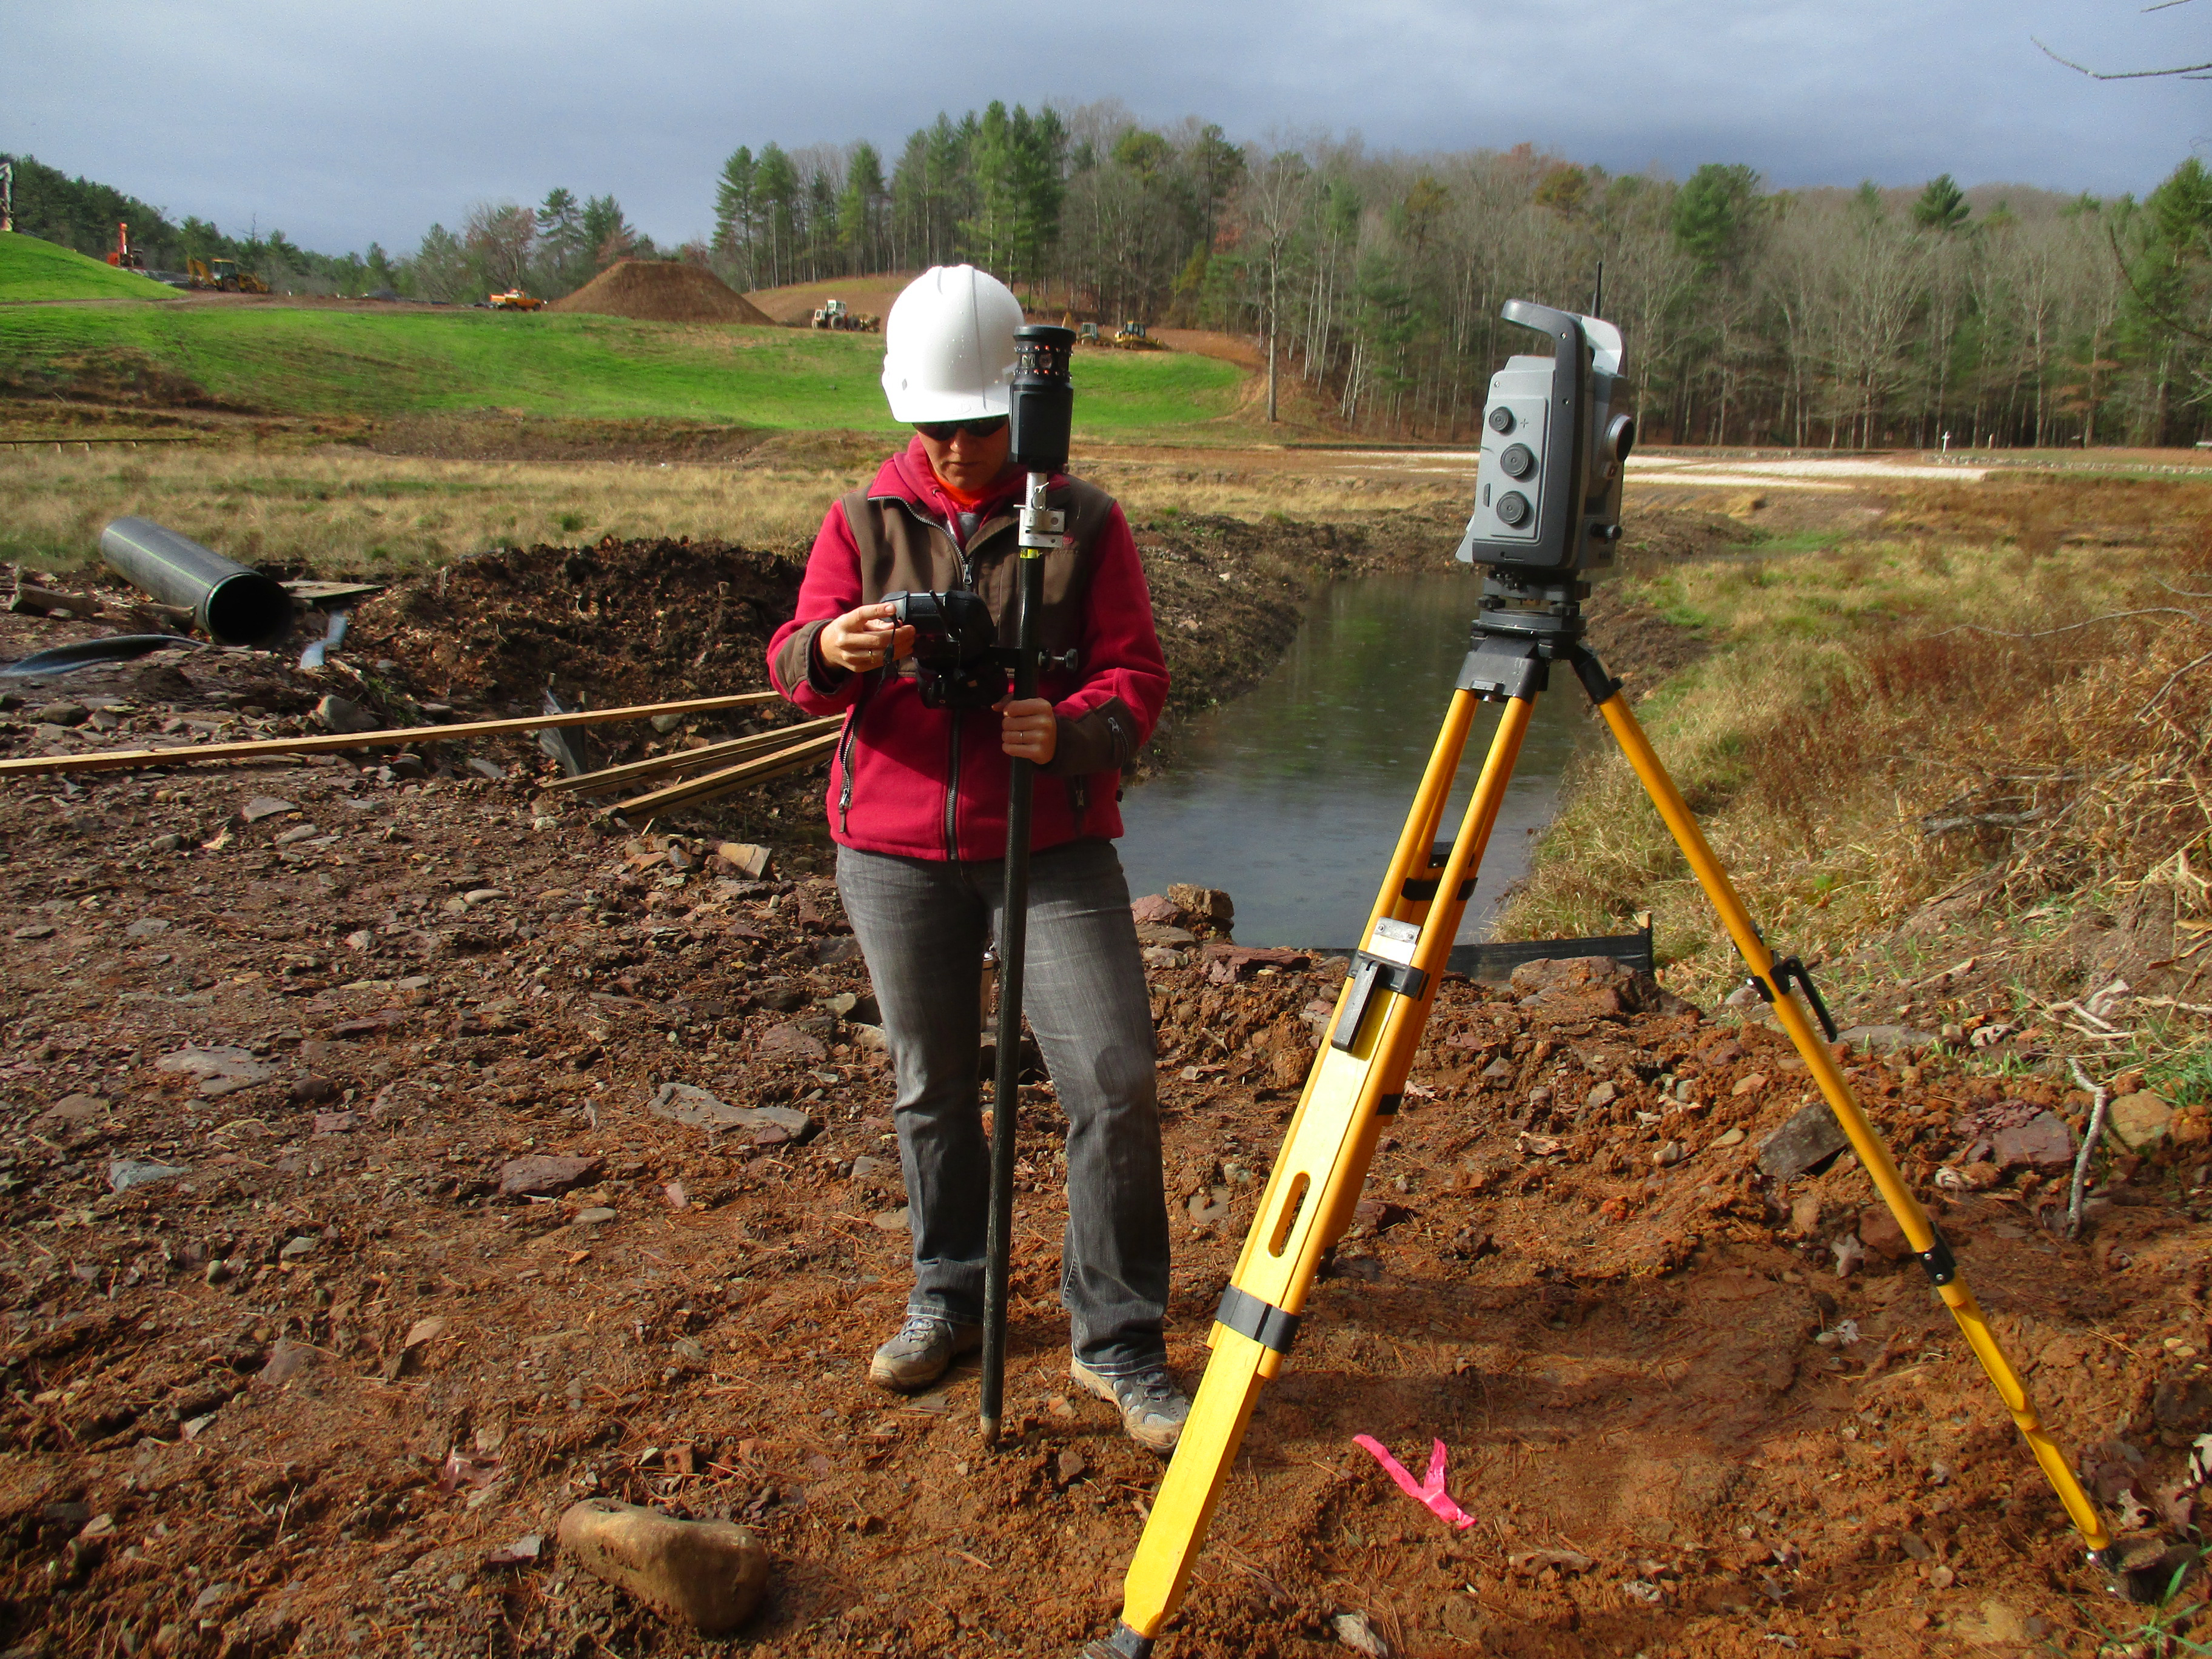 Fig. 2: Evans holds a multitrack prism for the Trimble VX total station to check the surface grade for the dam's rock toe drain.